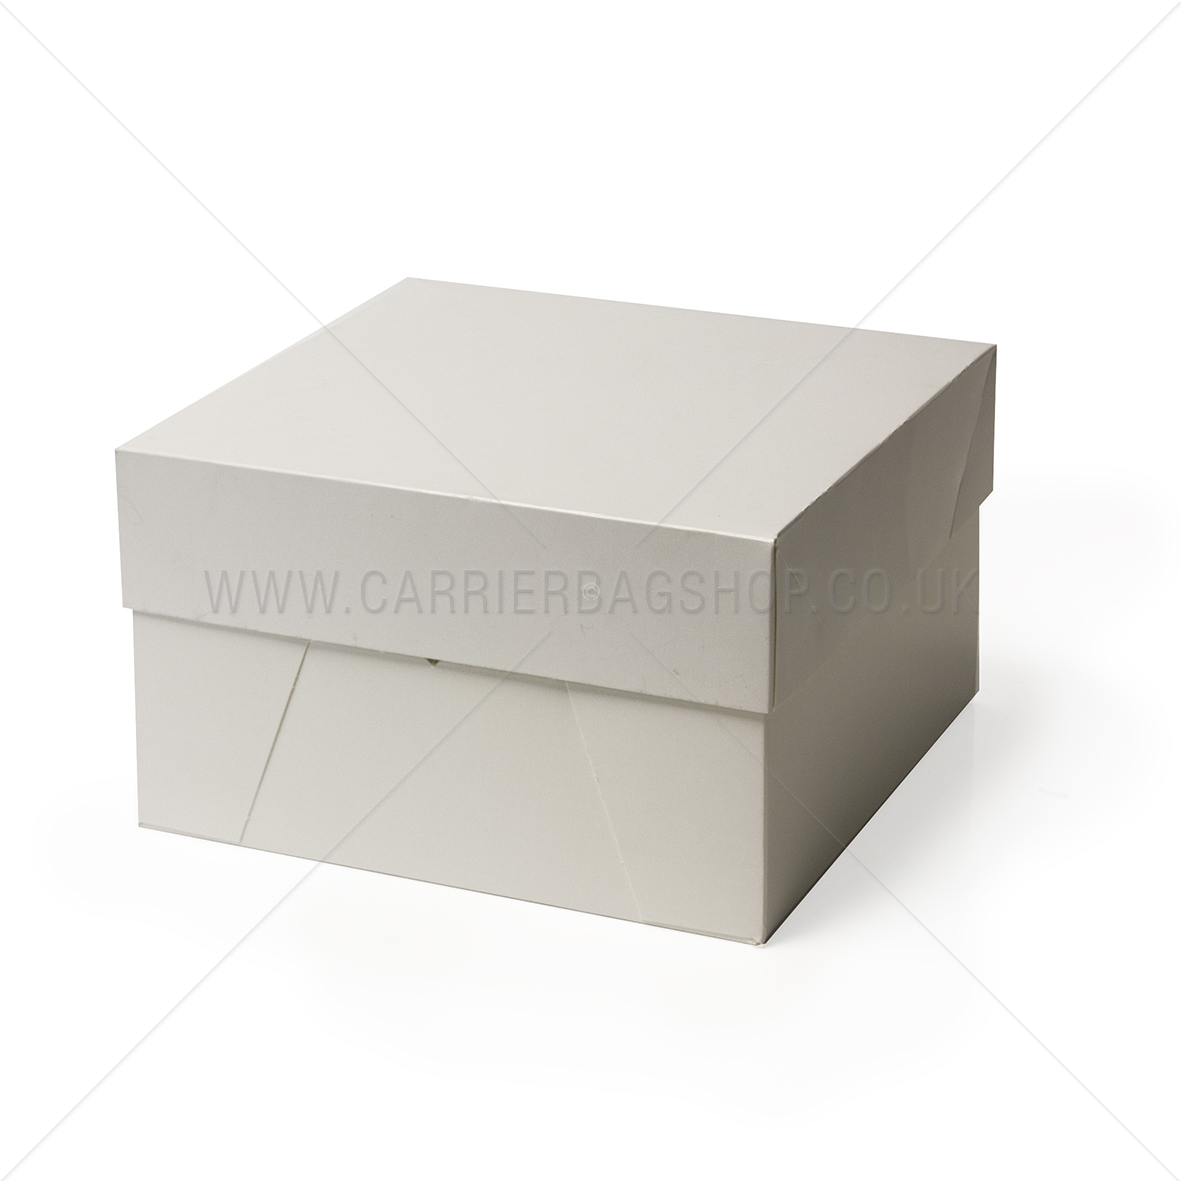 Cake Box Carrier Bags